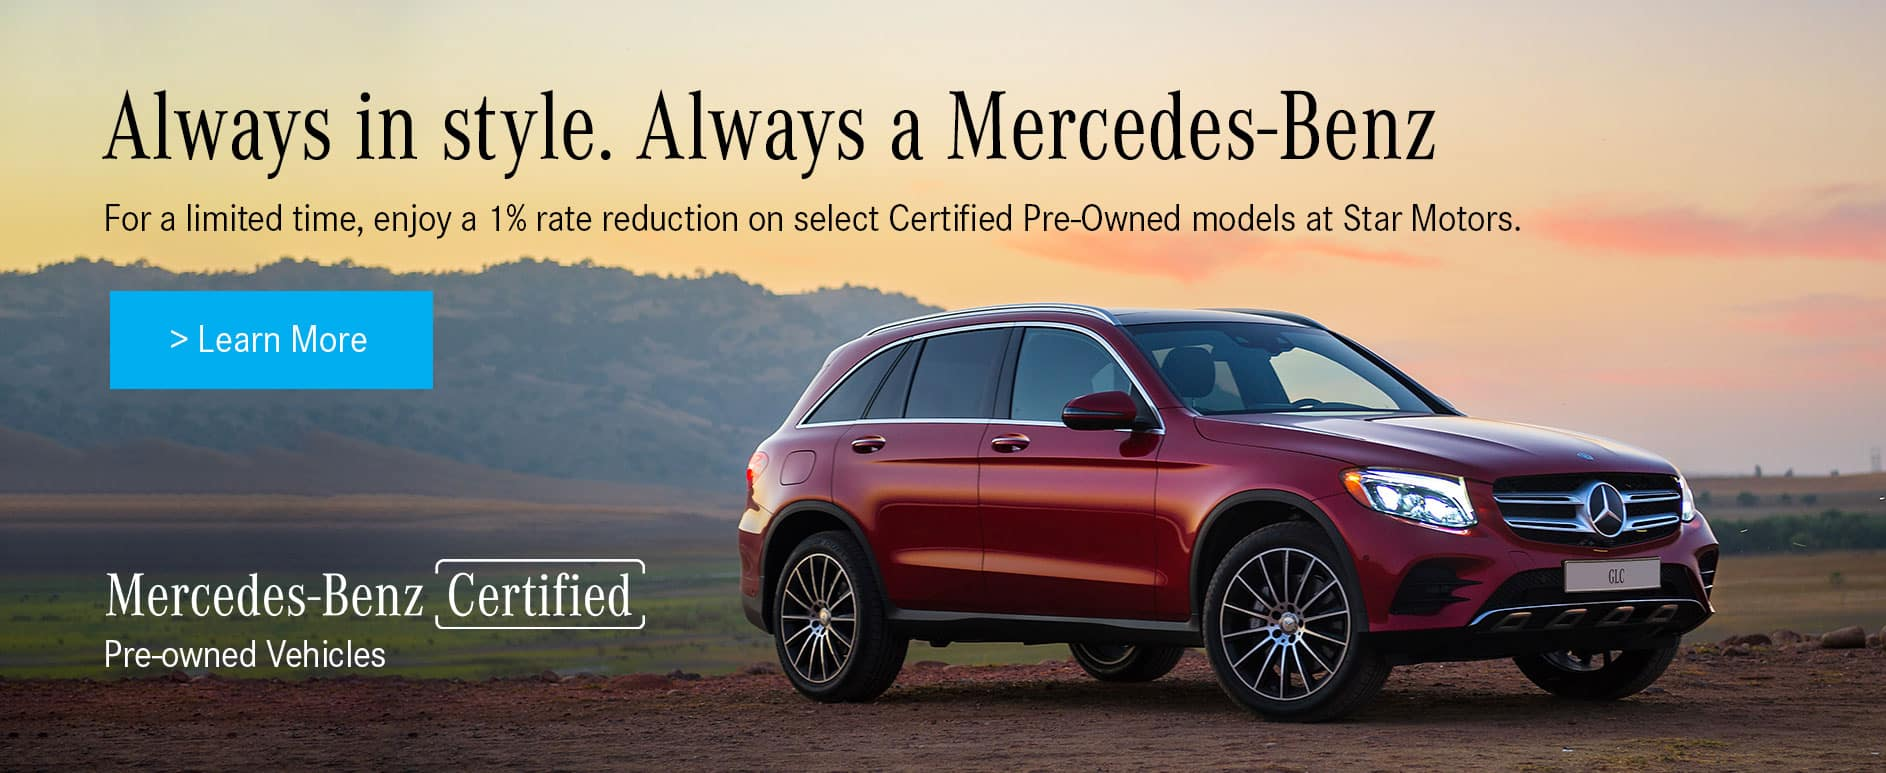 Certified Pre-Owned Offers at Star Motors